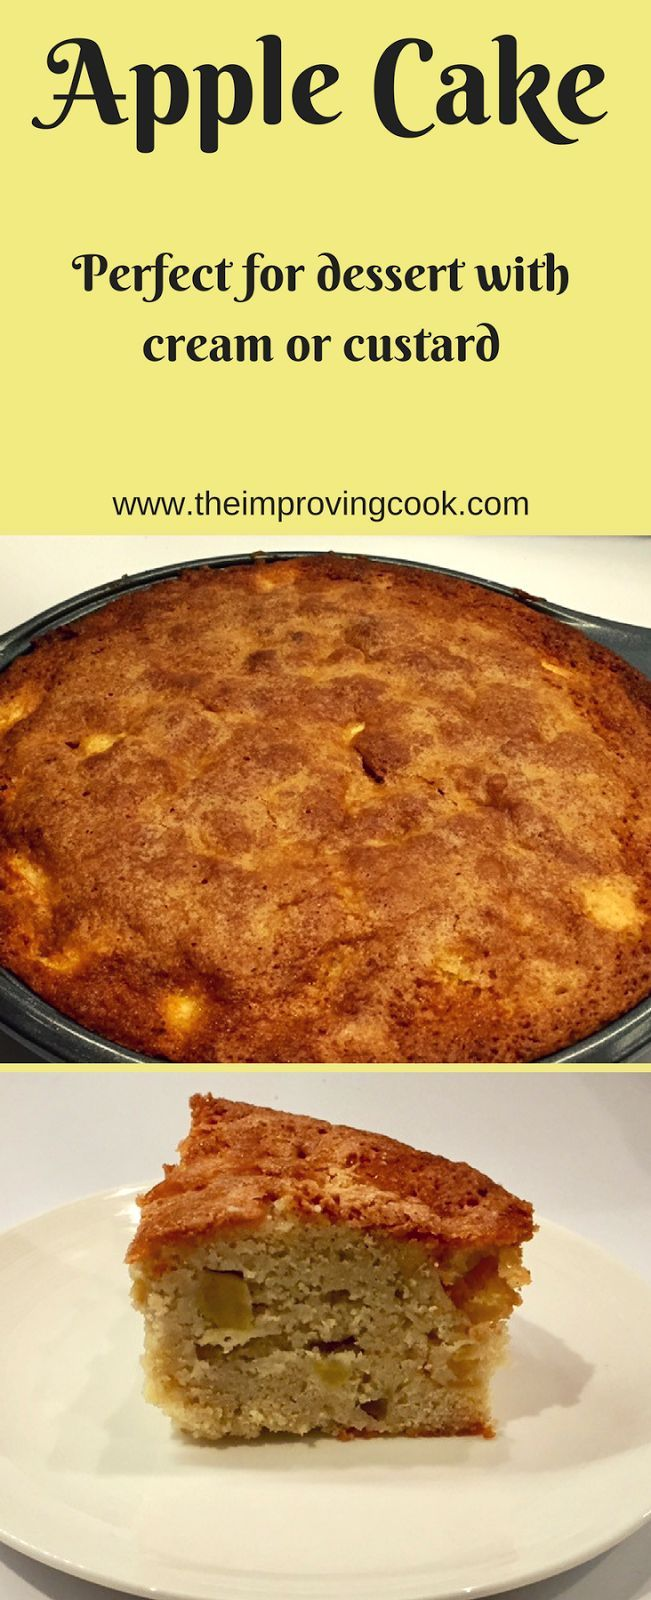 The Improving Cook Apple Cake- use up left-over apples to make this apple cake. Eat a slice on its own or serve it warm with cream or custard. Makes a great winter dessert recipe.